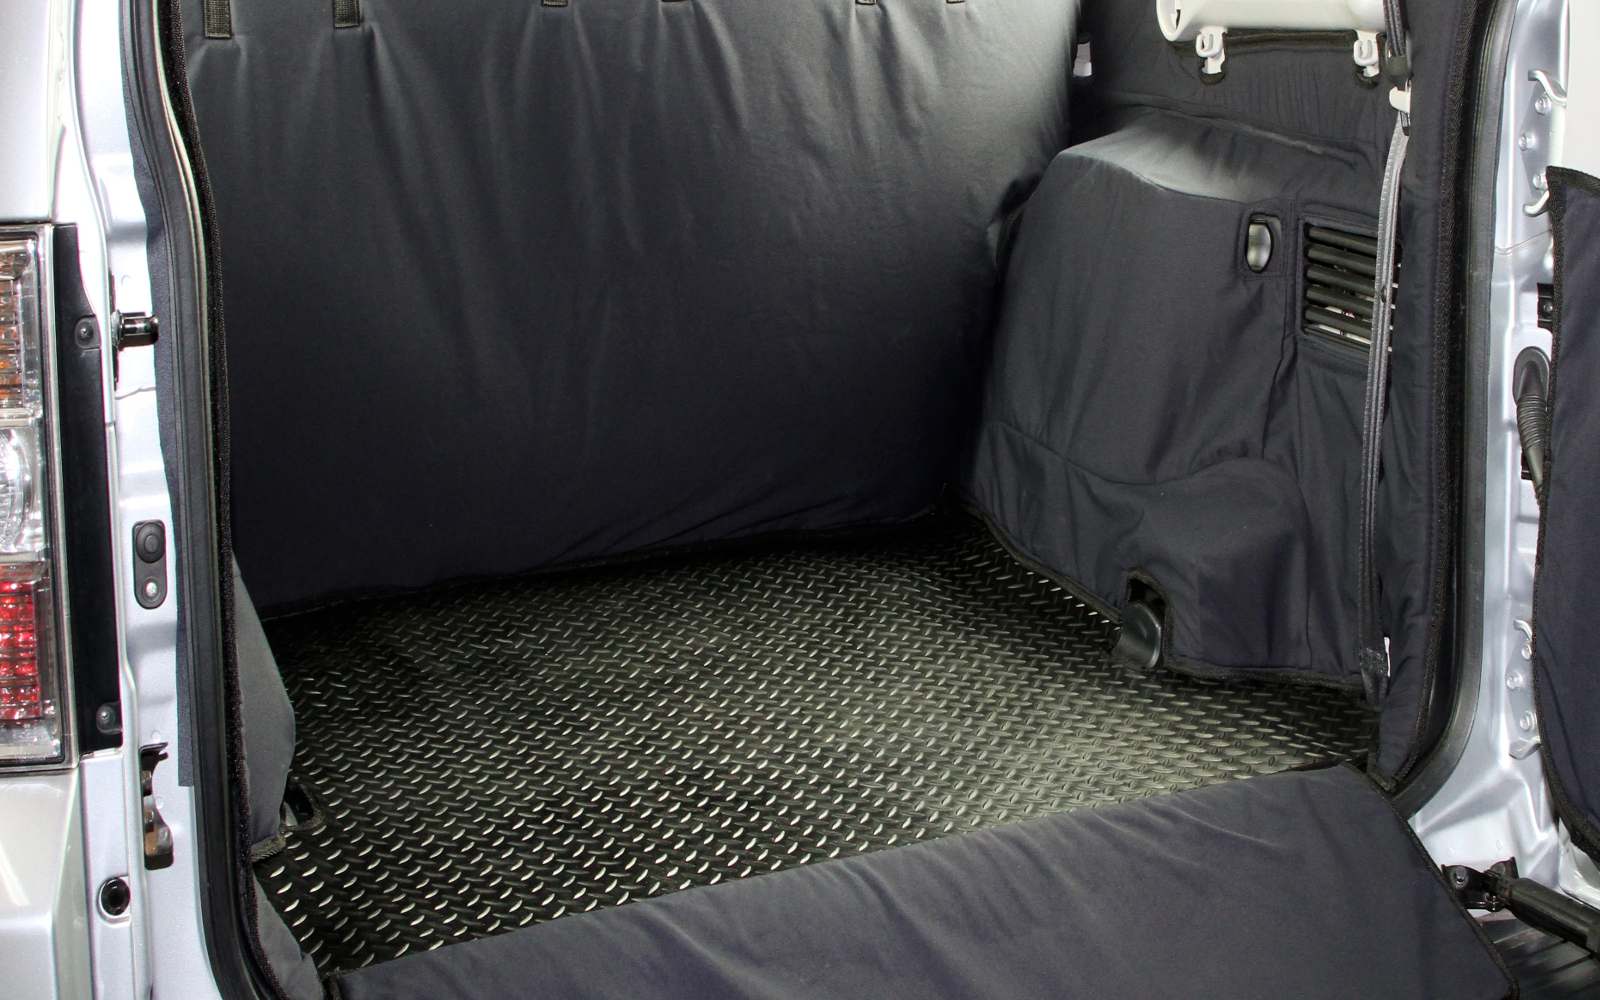 Takla Vehicle Products Get Seat Covers Floor Mats Amp More